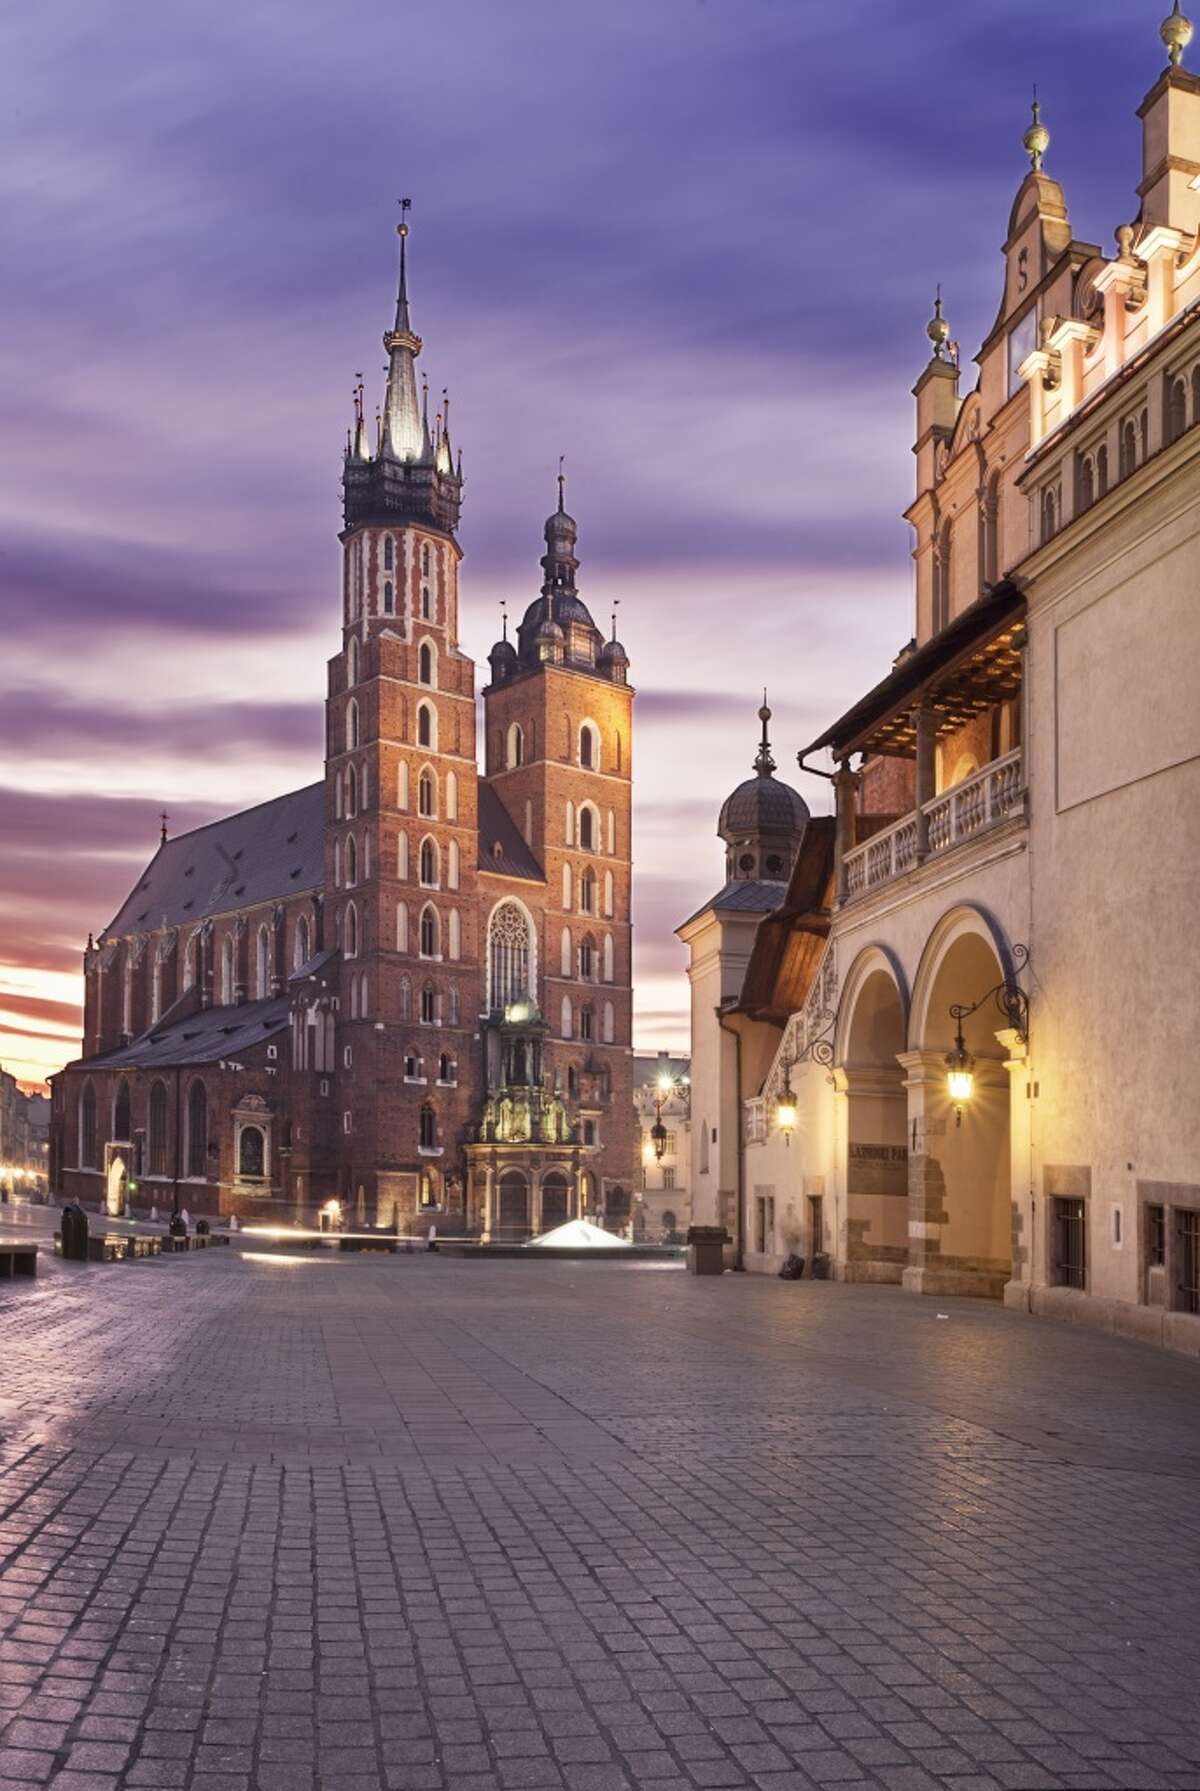 FRIENDLIEST 8. Krakow, Poland (See the full list here)